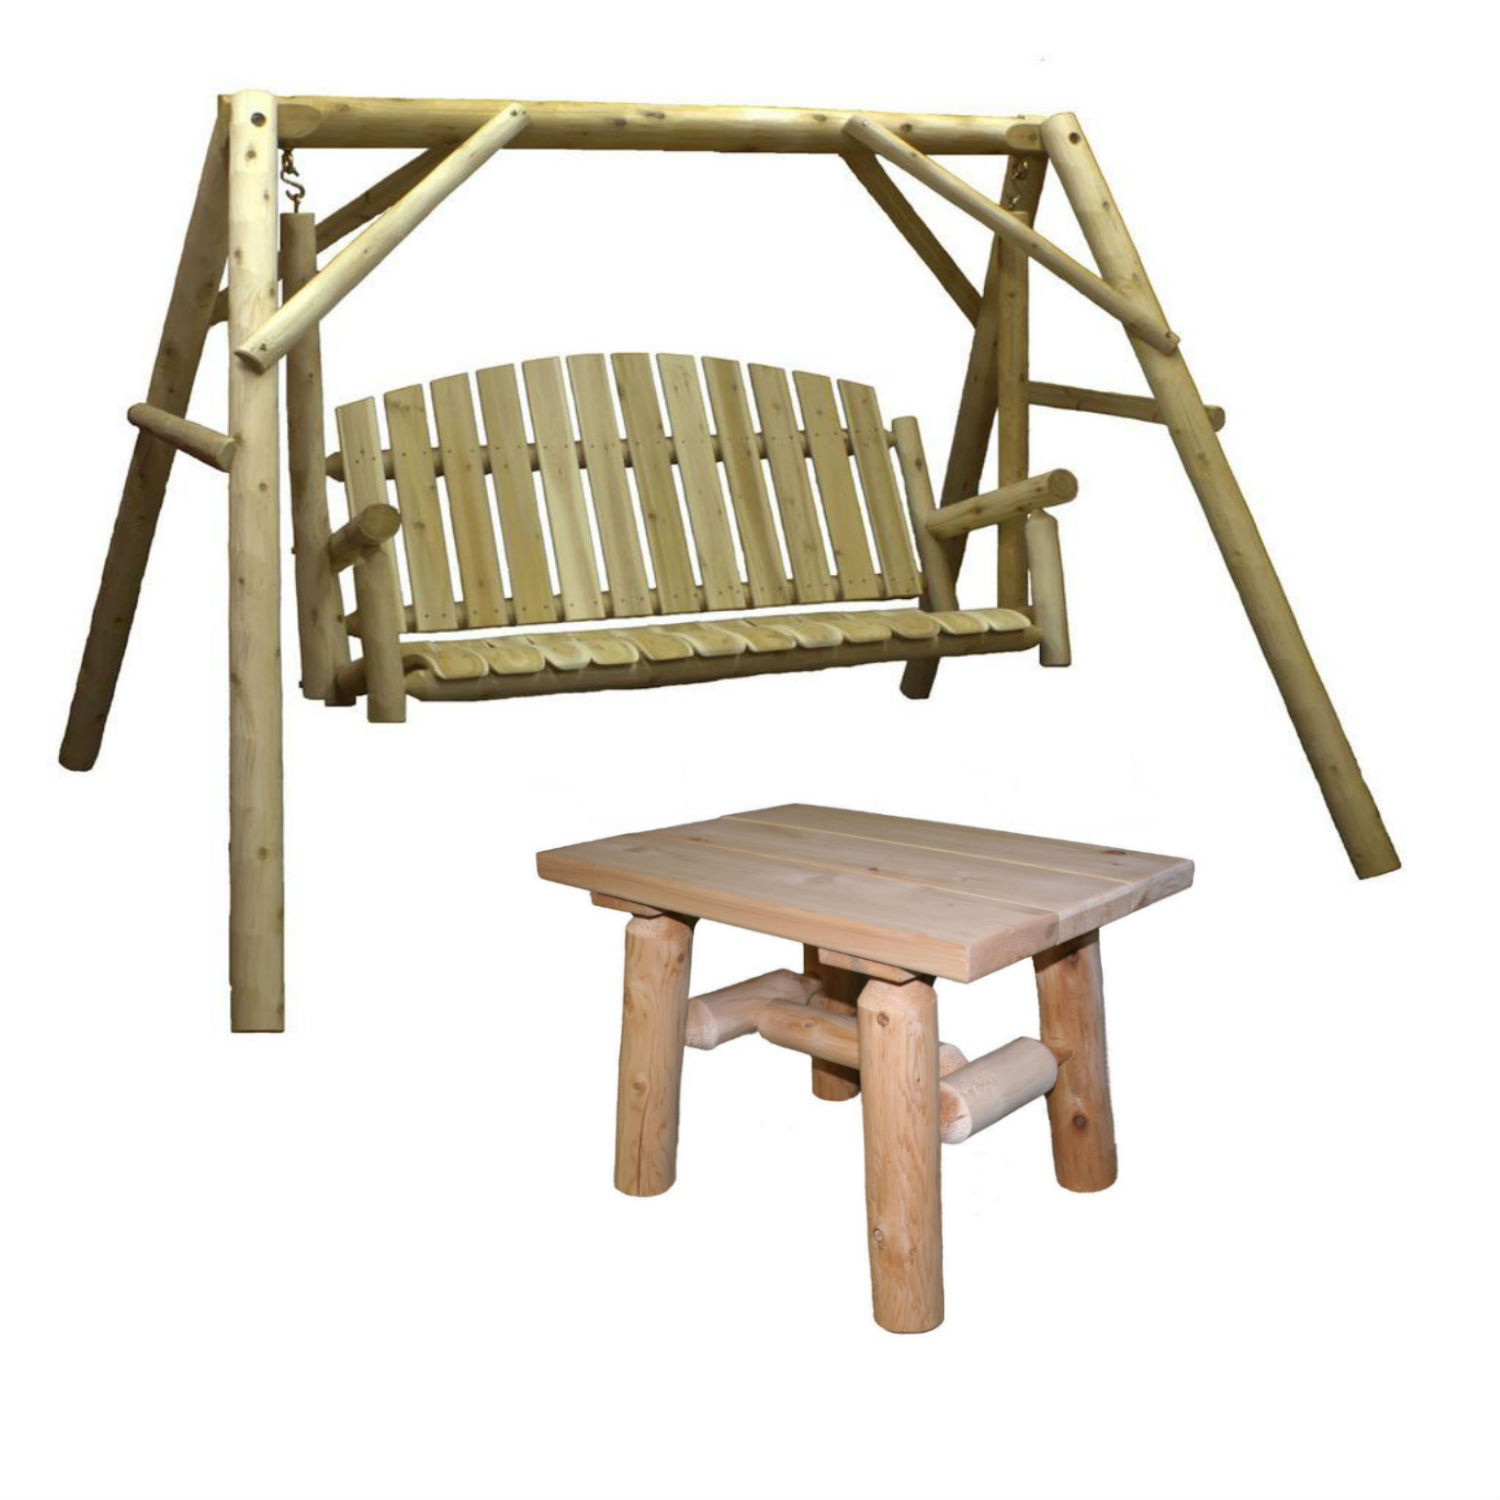 Lakeland Mills Country Cedar Outdoor Porch Swing and Stand Set with End Table